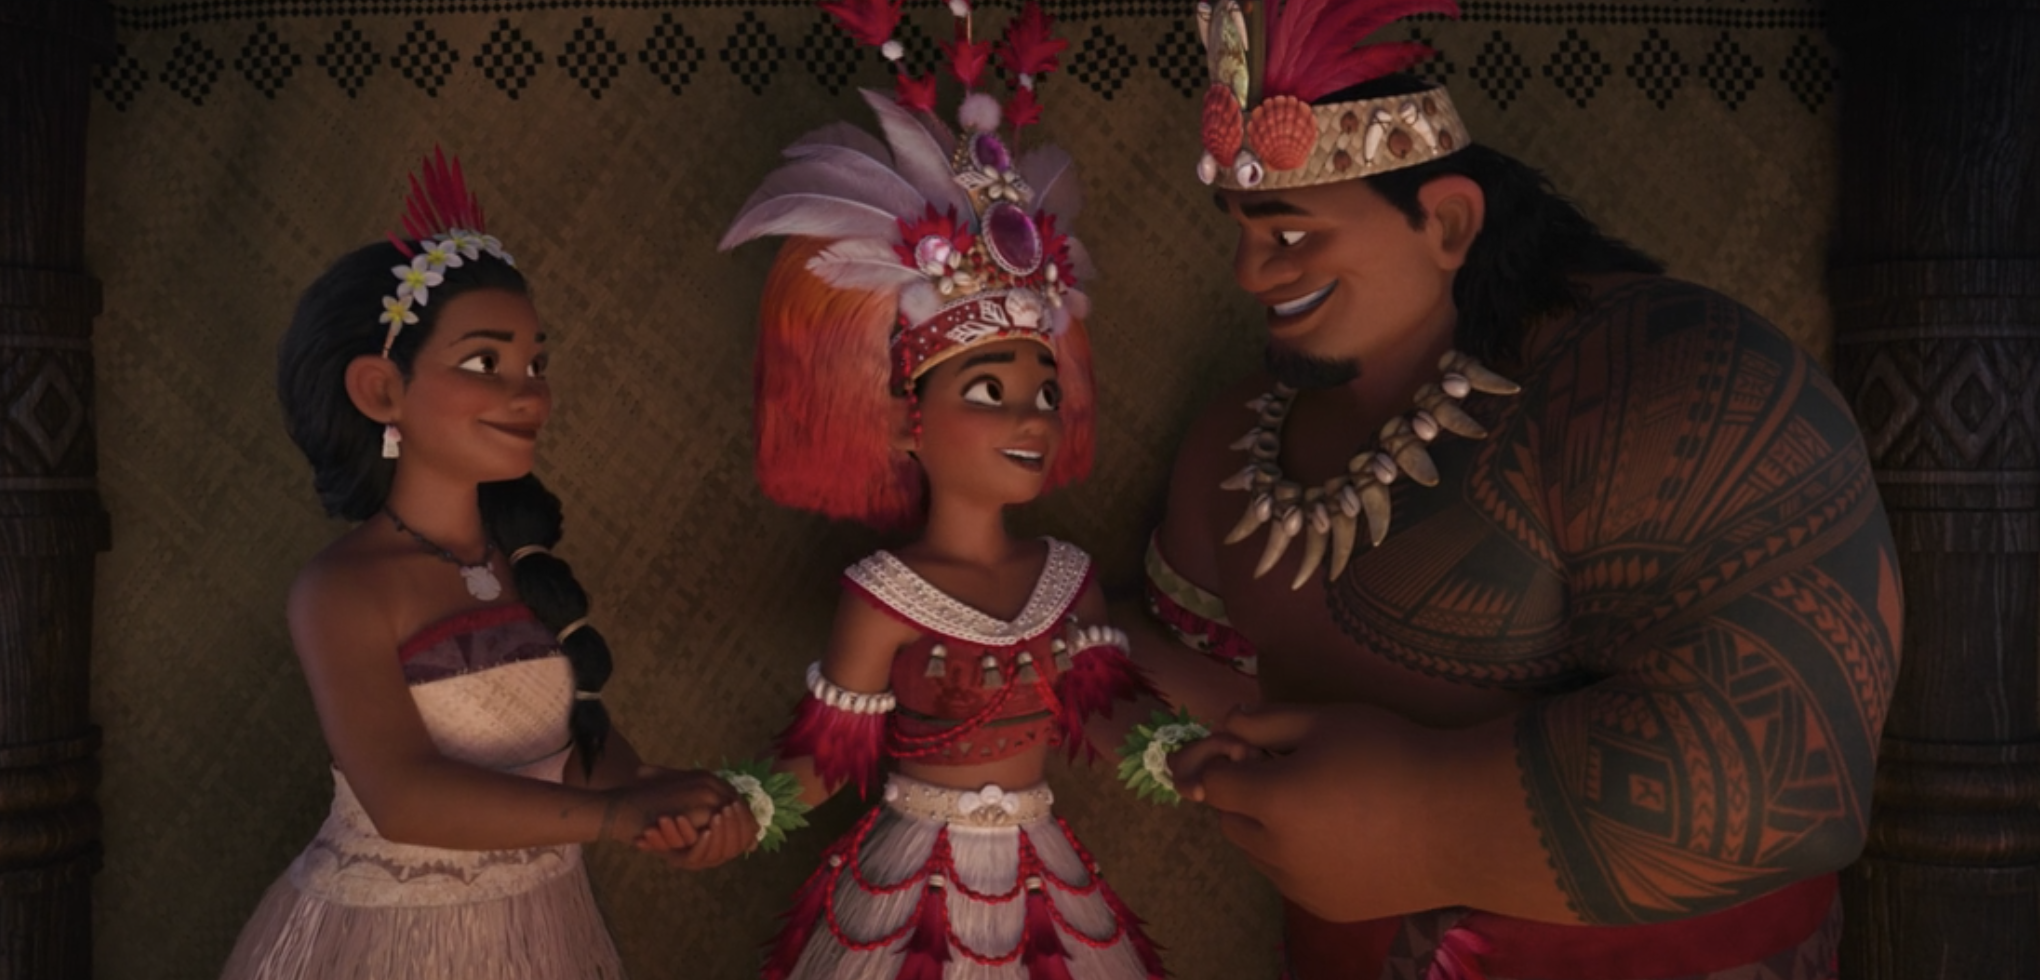 Moana standing with her parents in traditional attire, including a headdress with beads and feathers